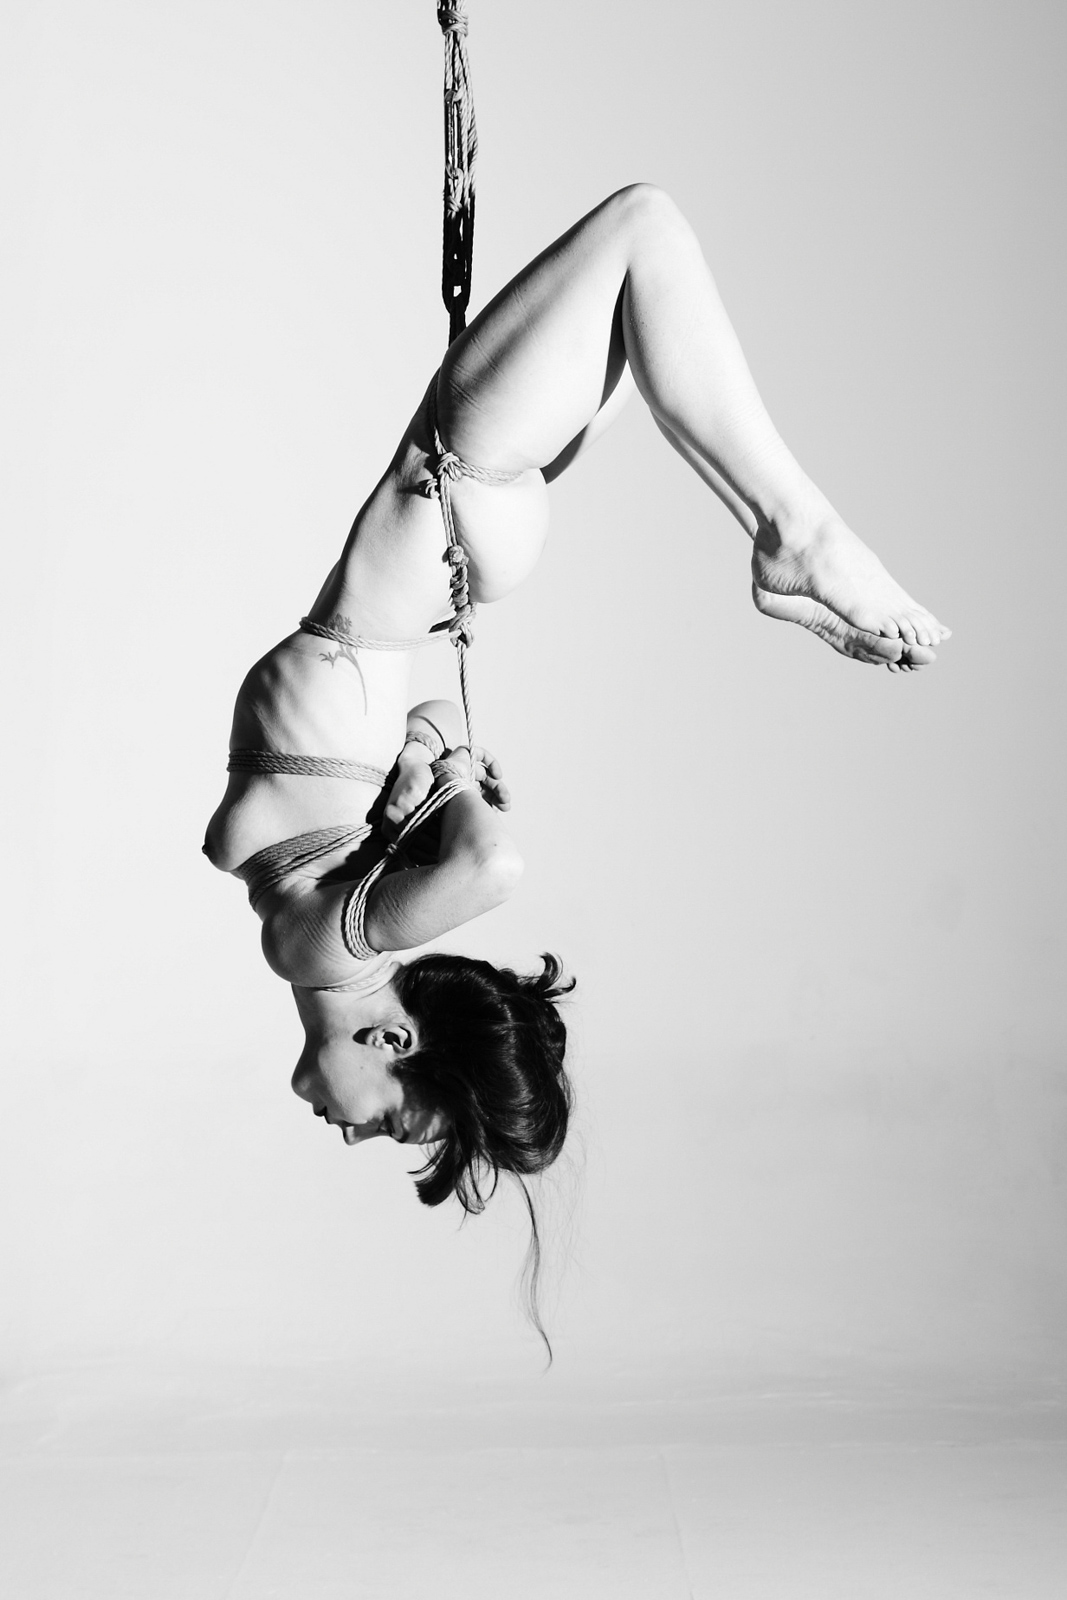 silhouette of a man standing next to a woman tied in shibari suspension